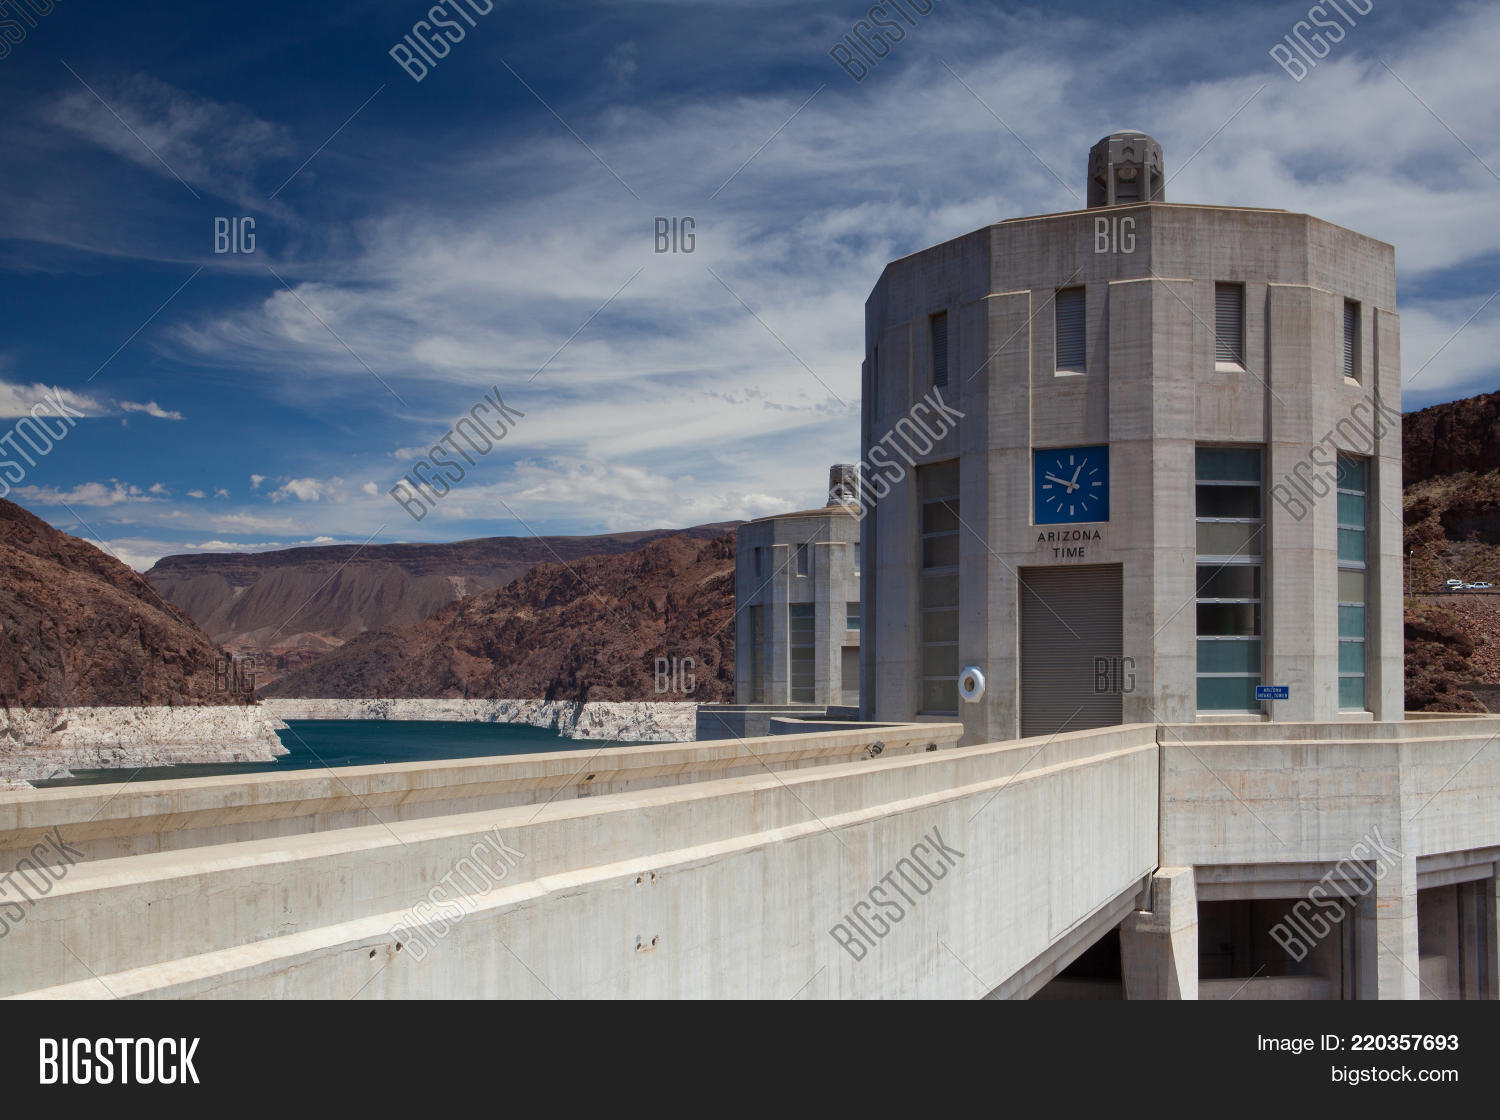 Hoover Dam Towers On Image & Photo (Free Trial) | Bigstock